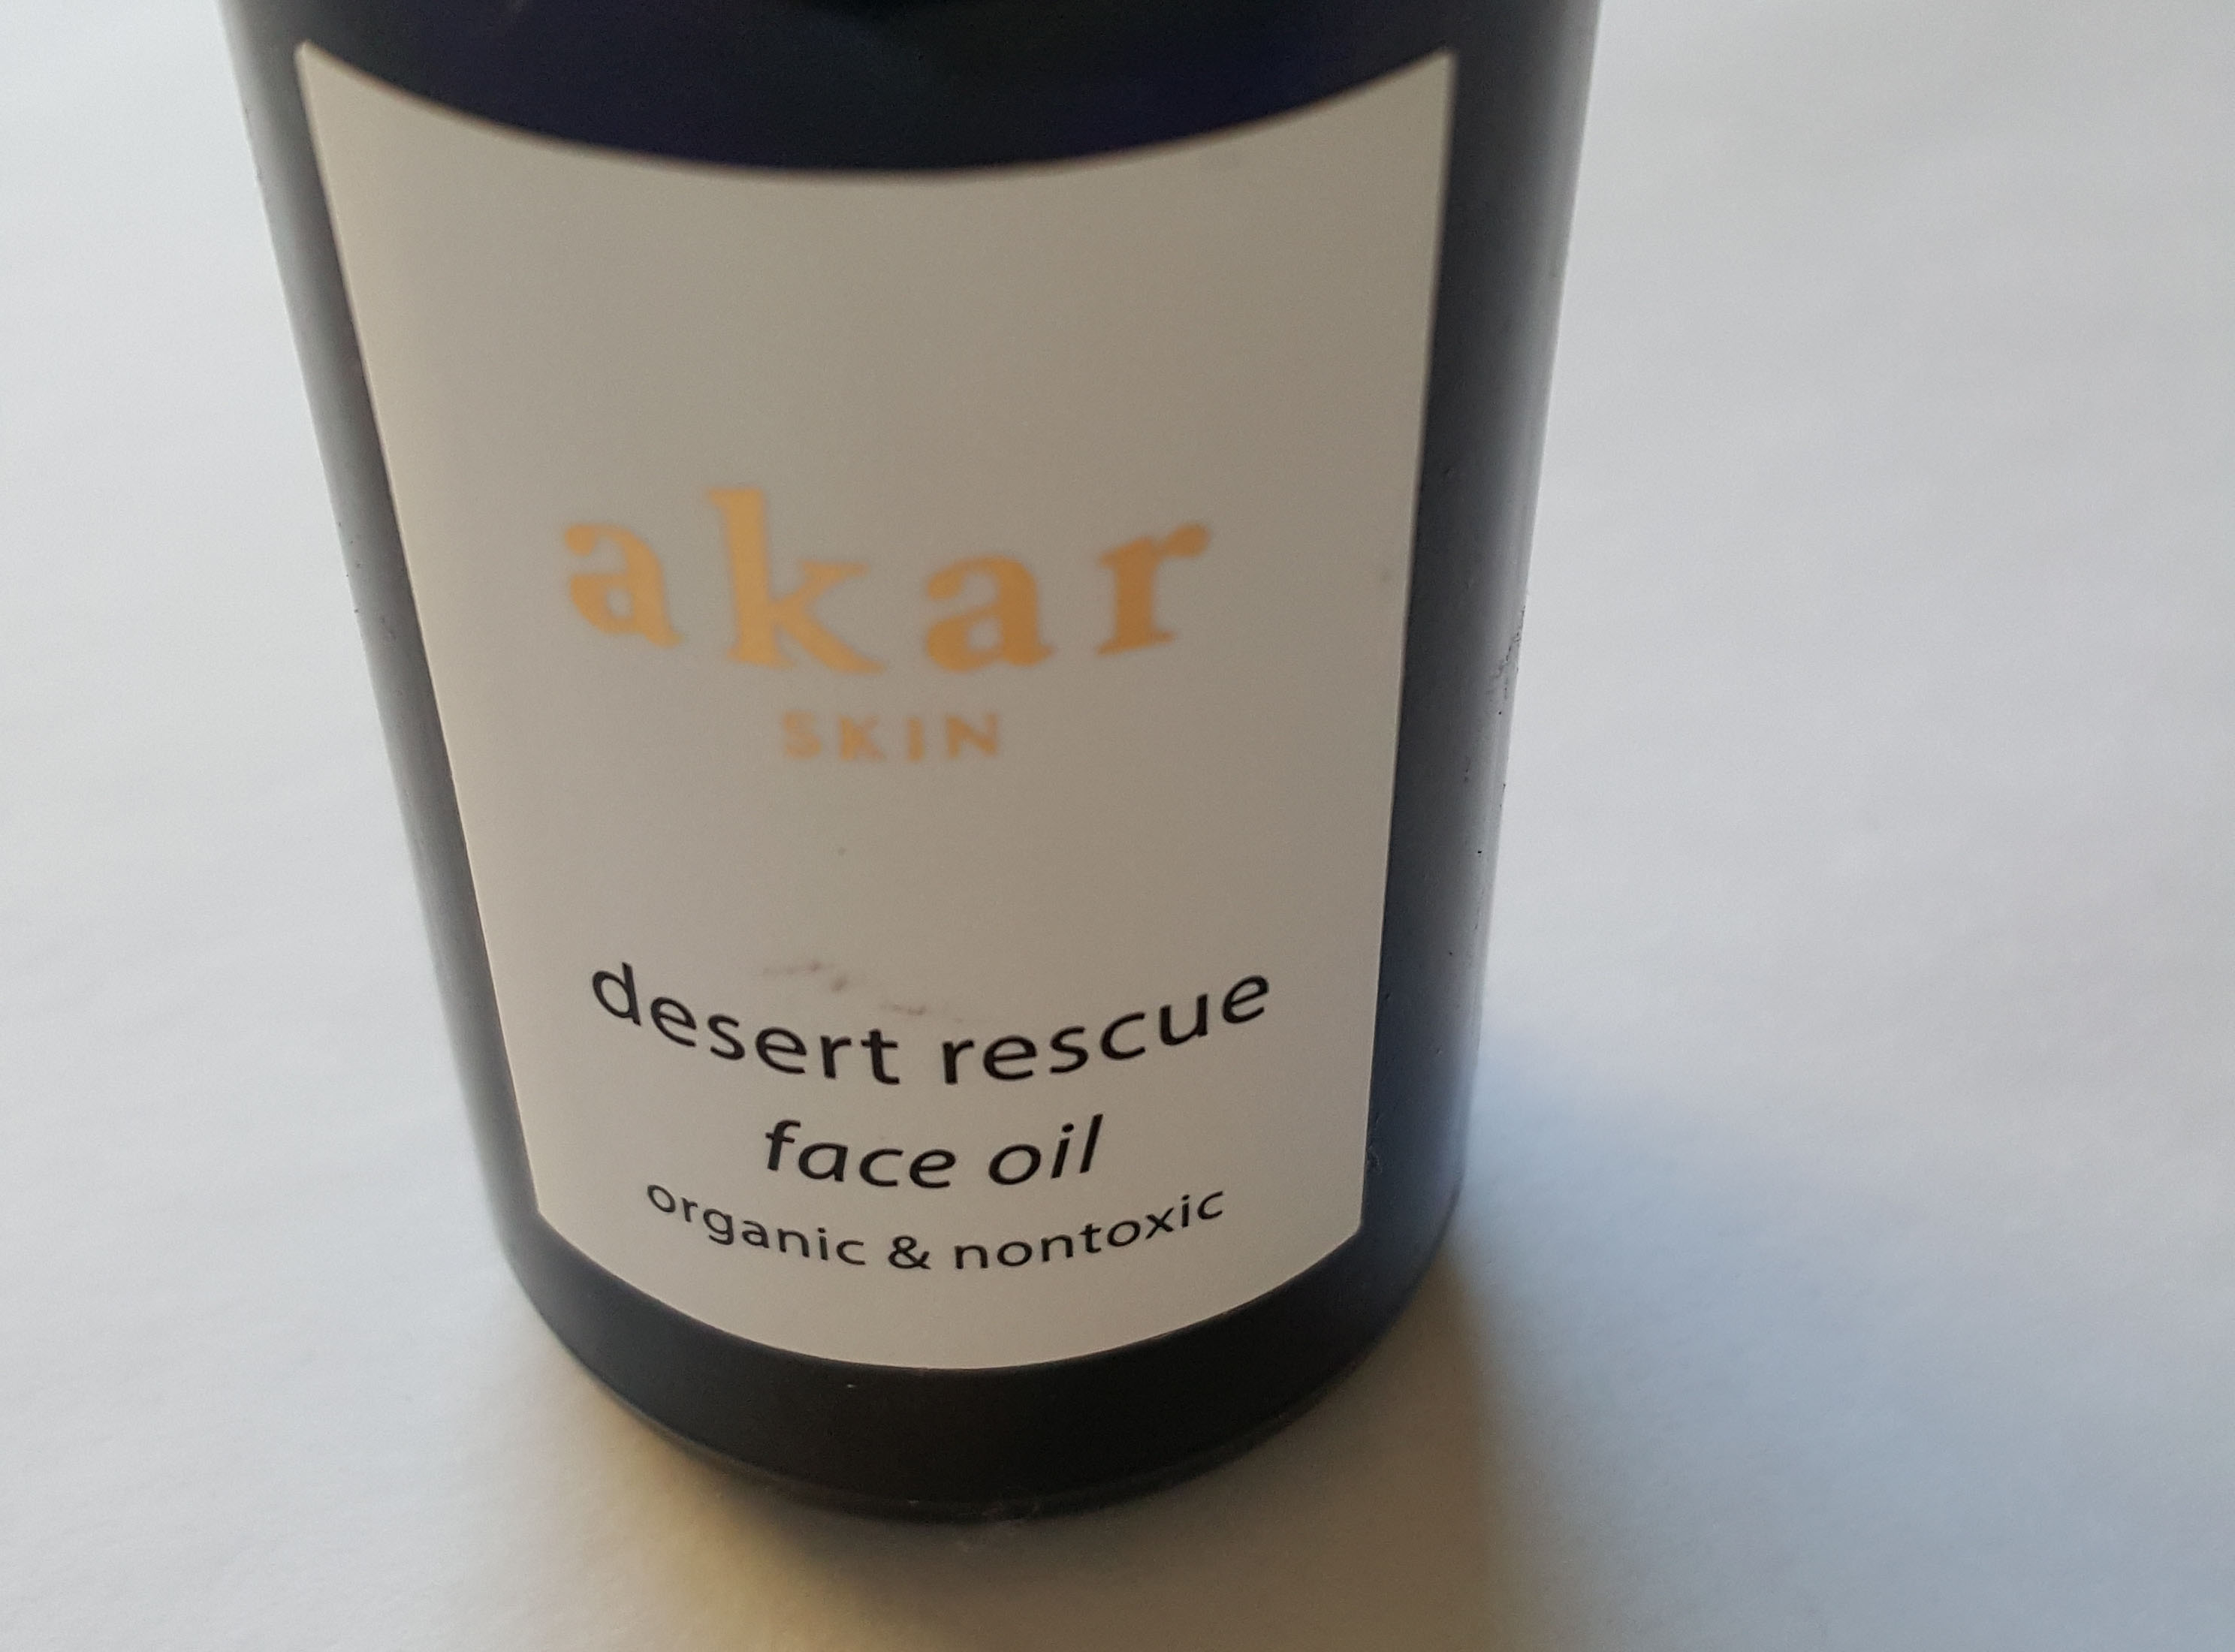 Akar Skin Desert Rescue Face Oil – Gently USED